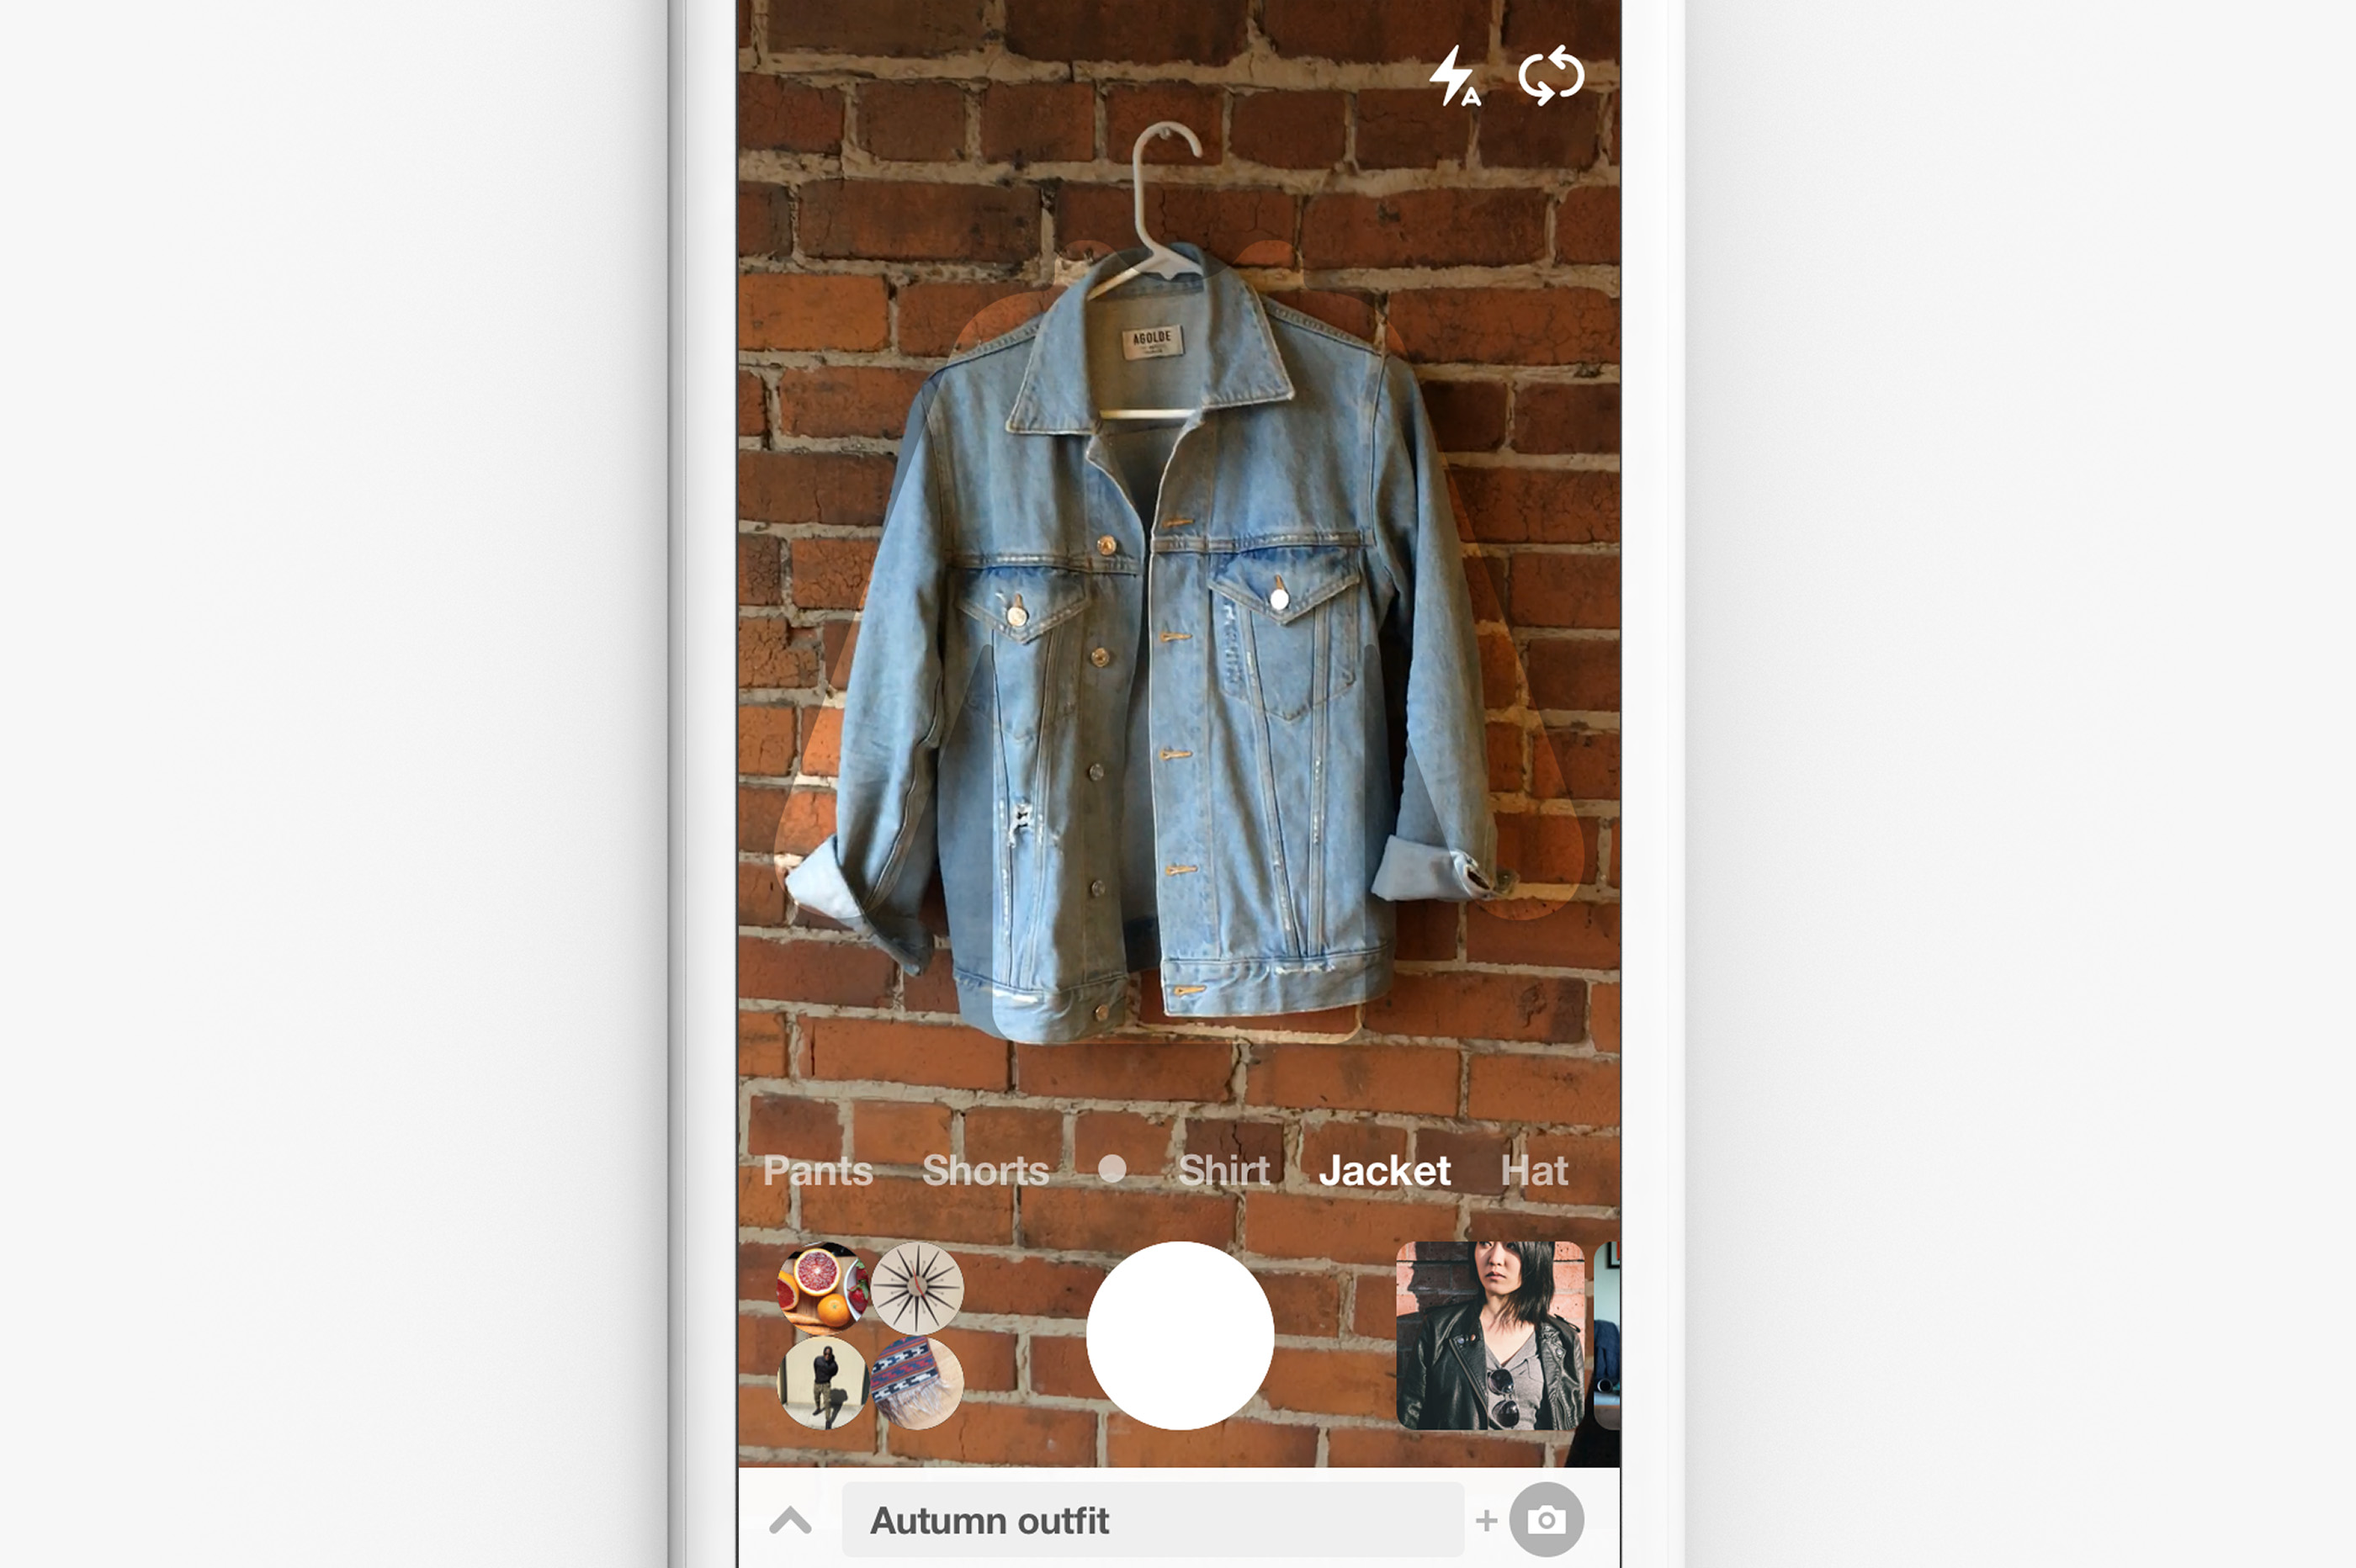 Lens your look on Pinterest app.